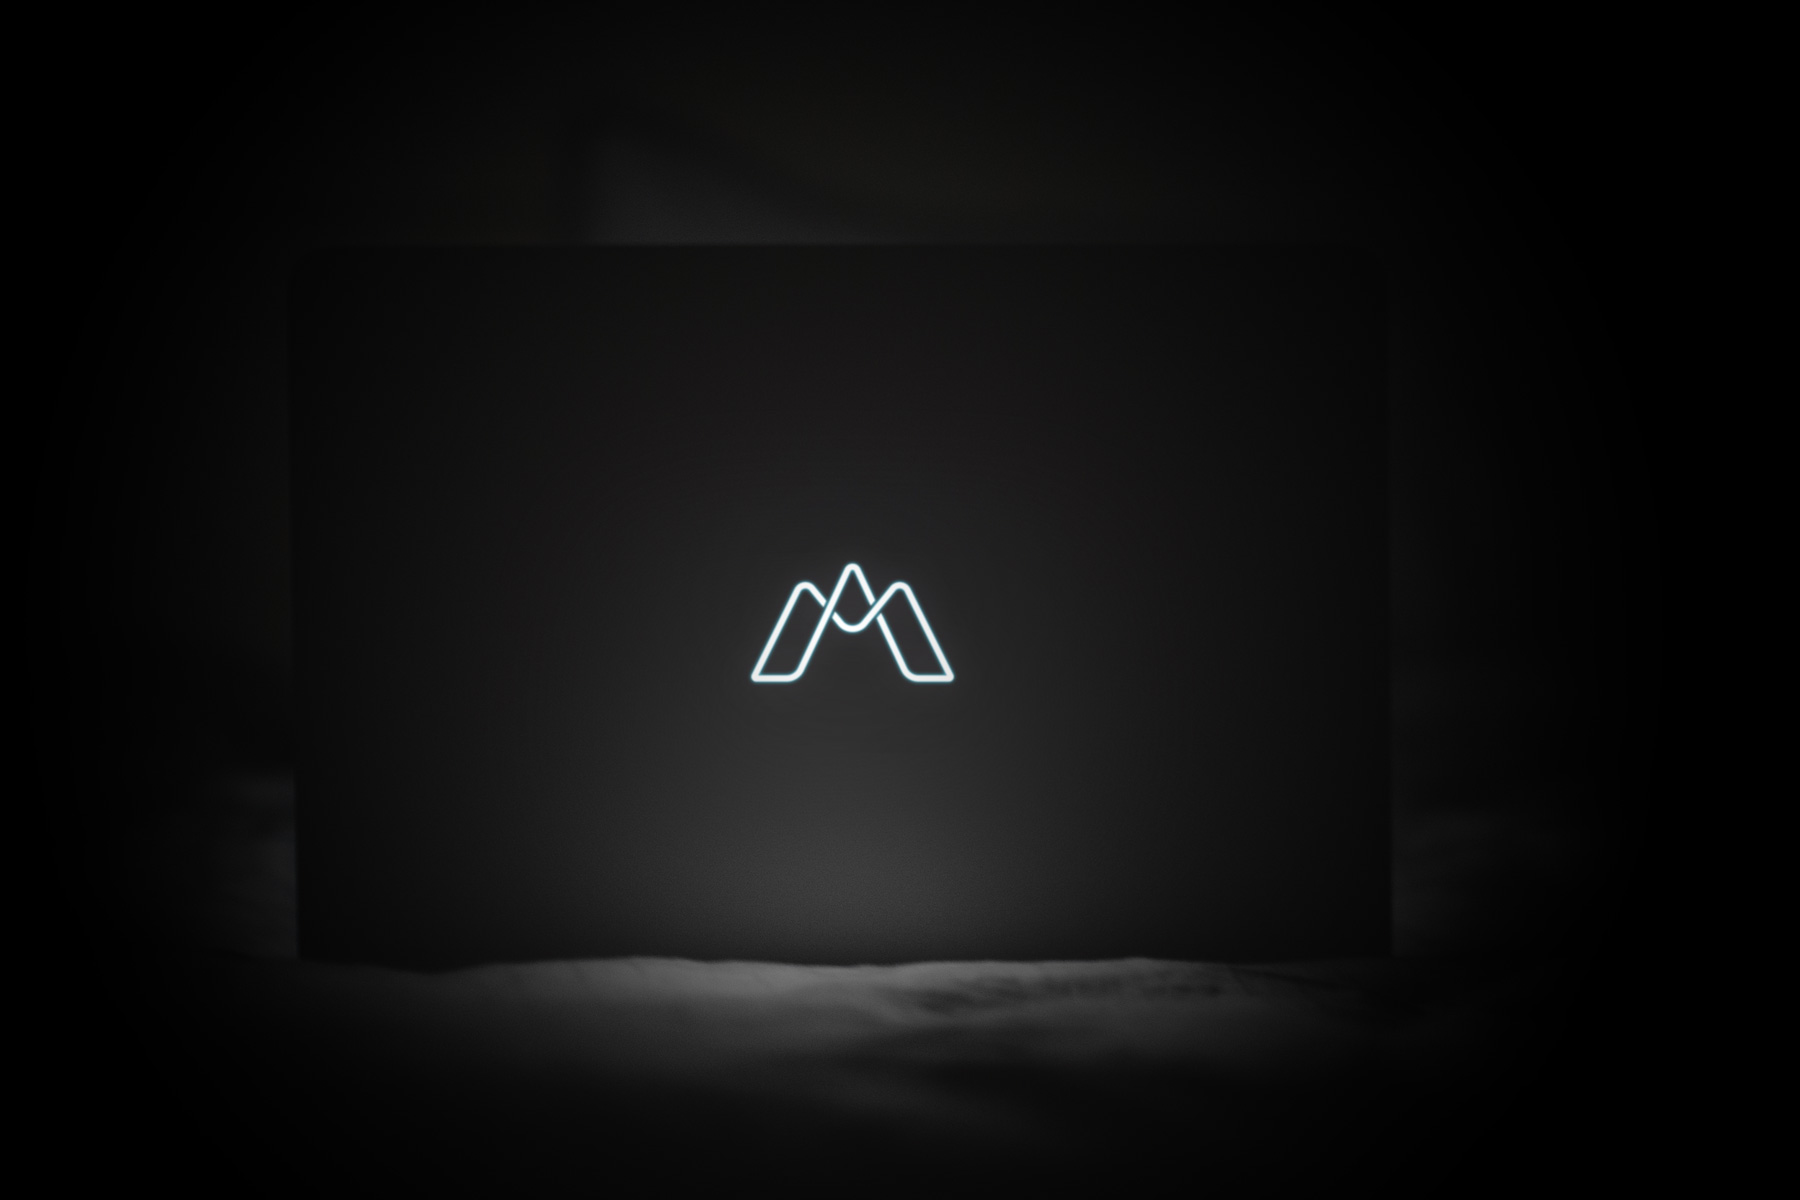 the infinite monkey lab logo design on a computer in the dark